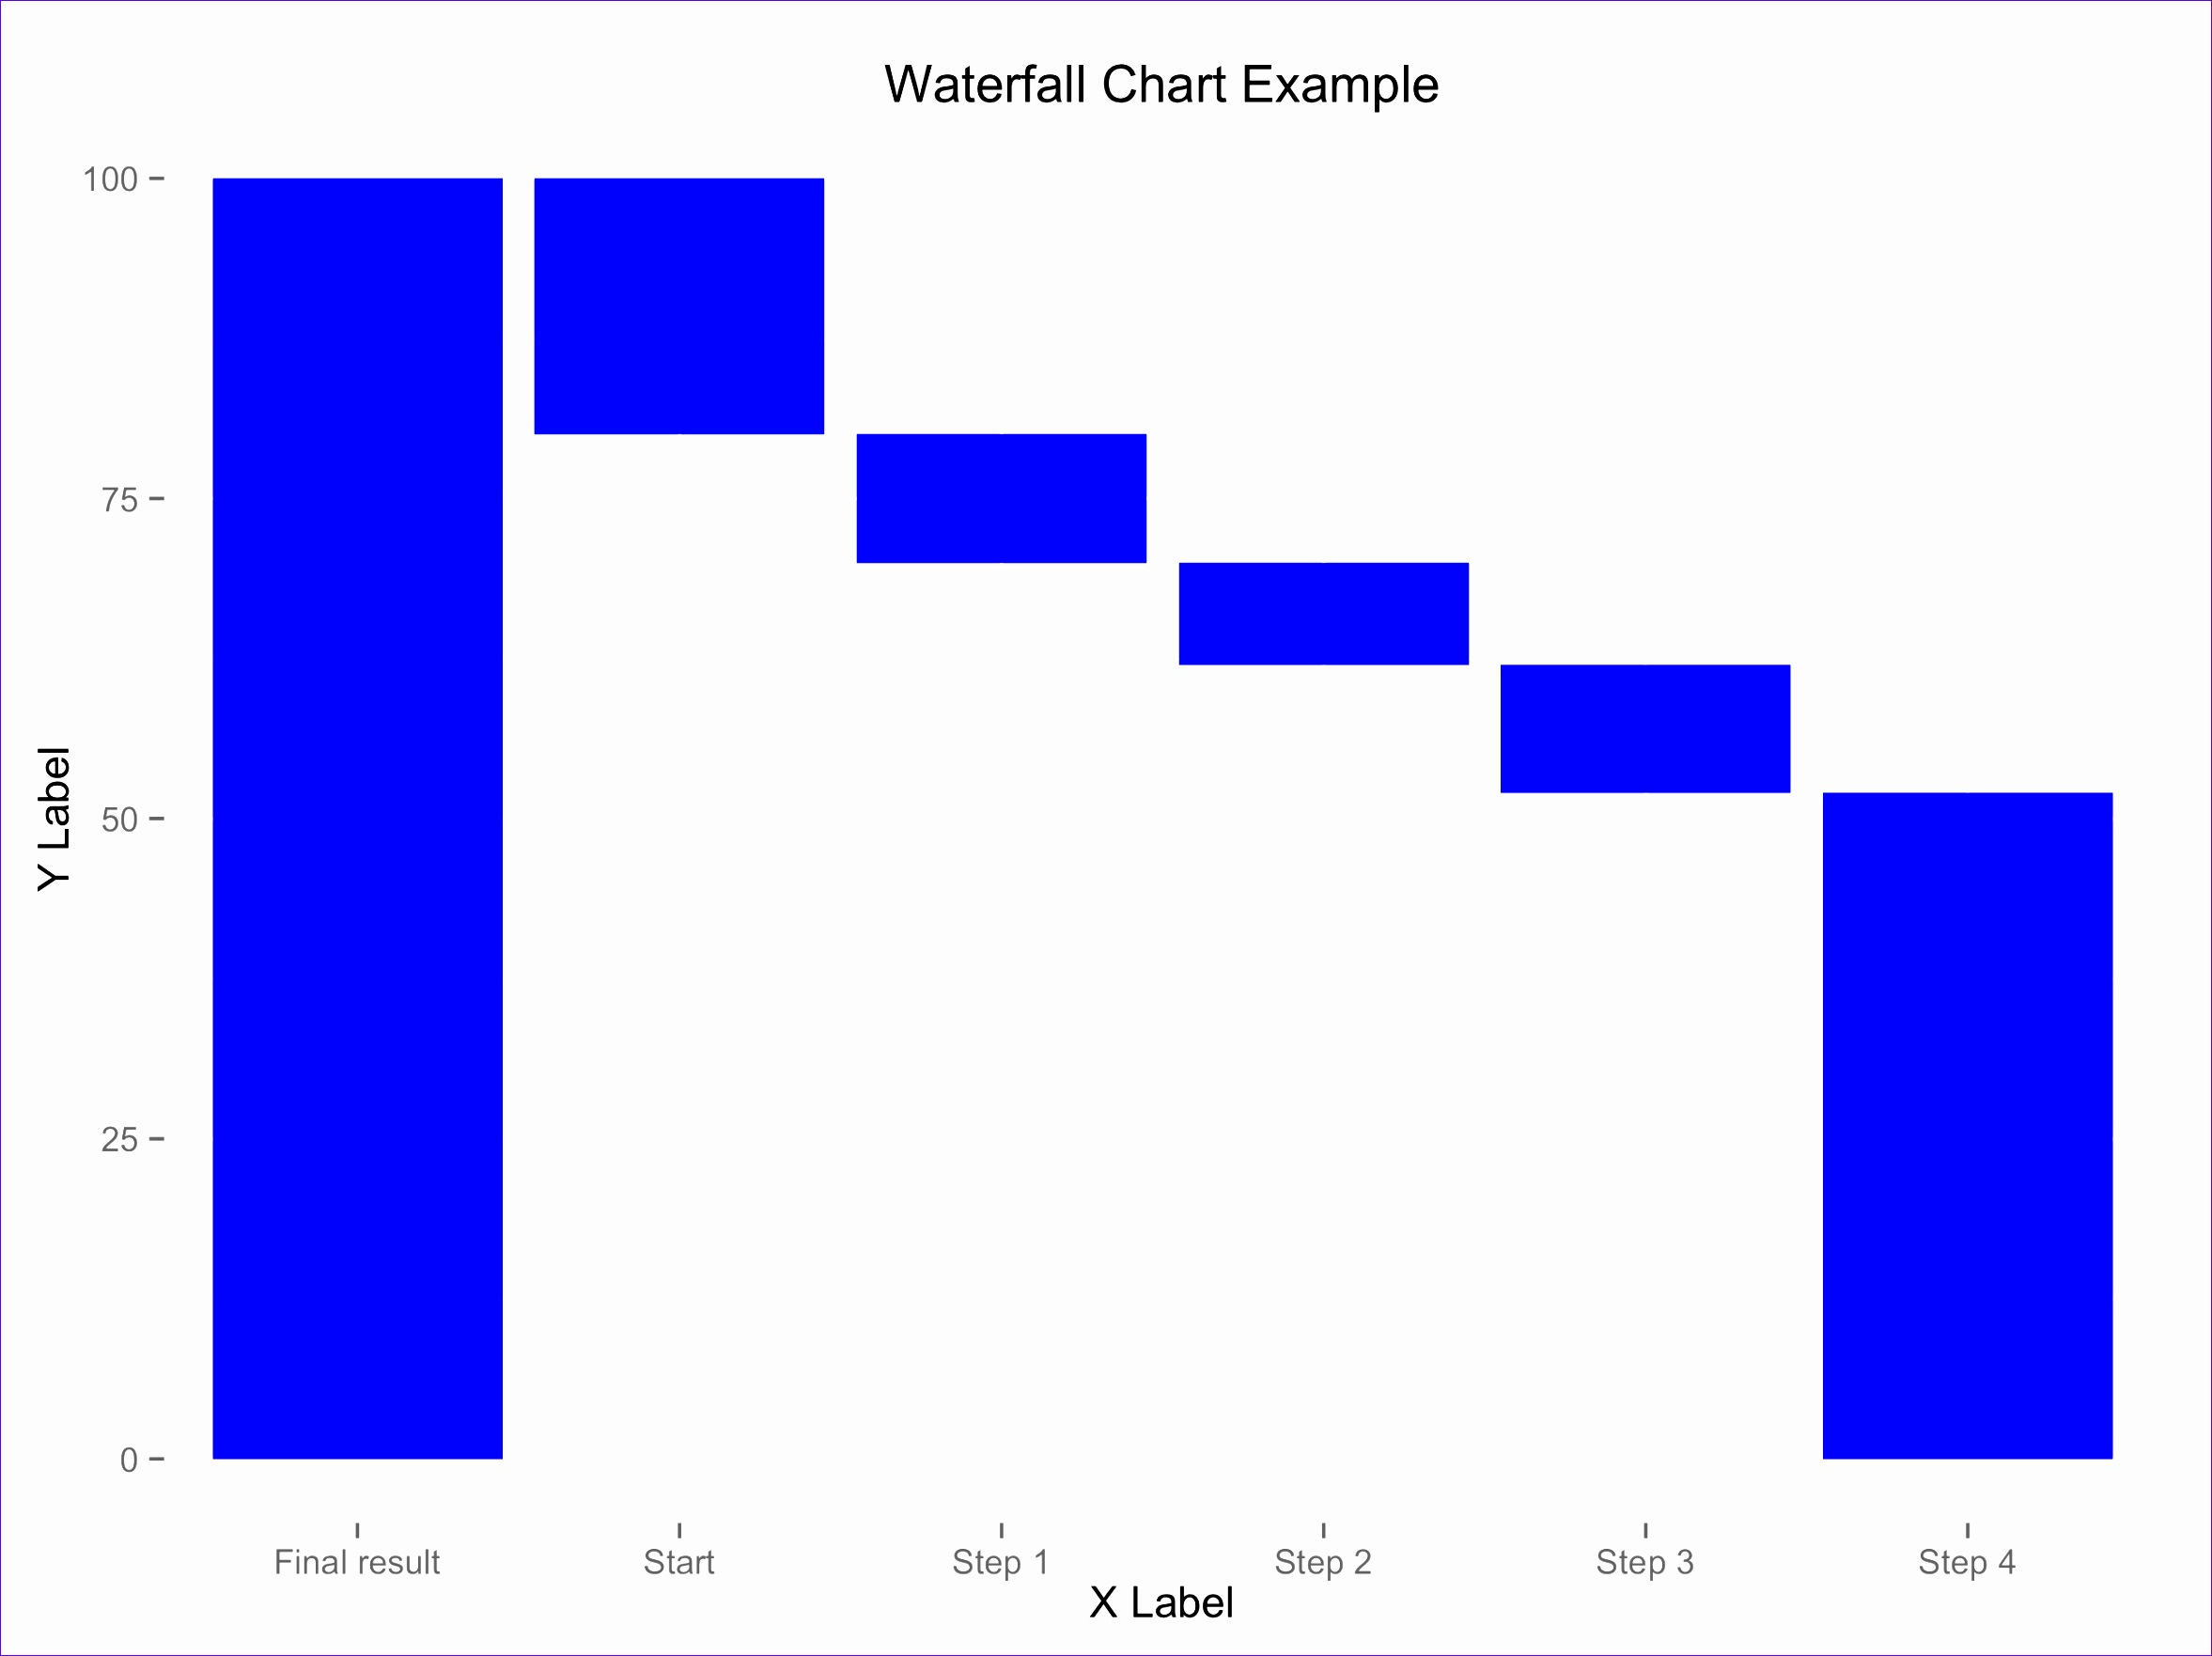 free templates waterfall charts in powerpoint waterfall charts in powerpoint how to do waterfall charts in powerpoint waterfall charts in powerpoint 2010 waterfall chart powerpoint